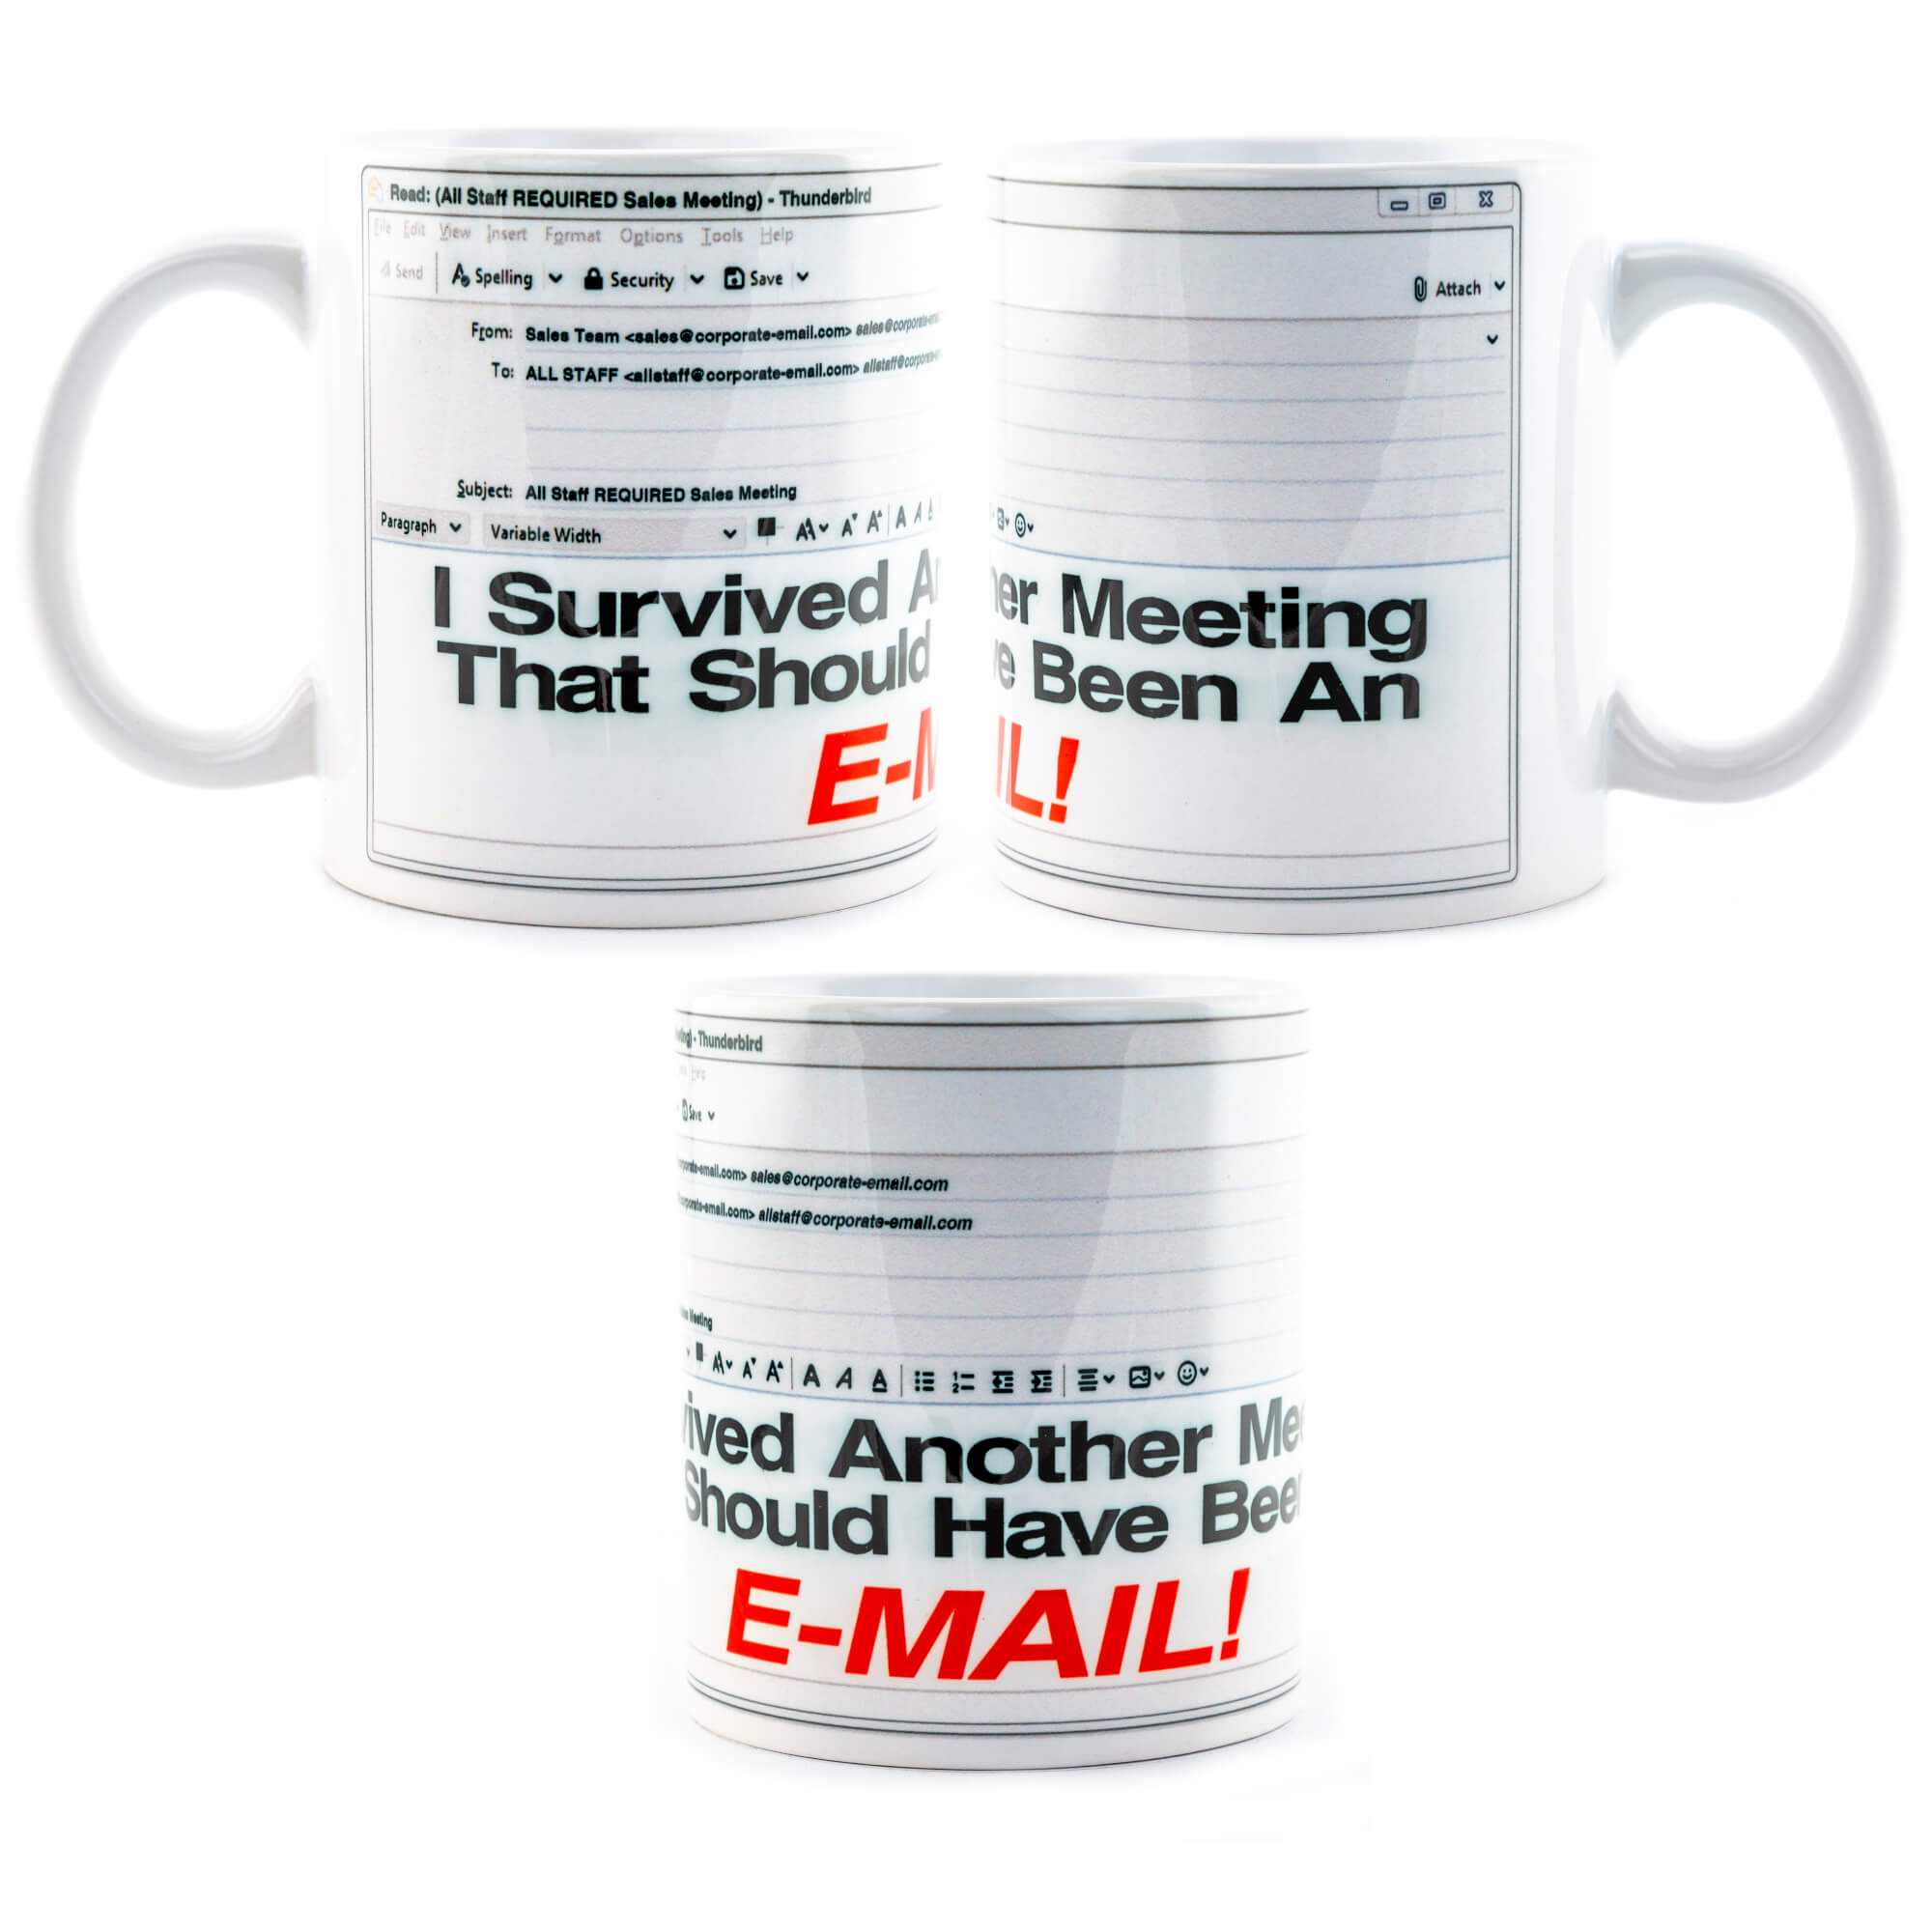 I Survived Another Meeting That Should Have Been An E-Mail Mug